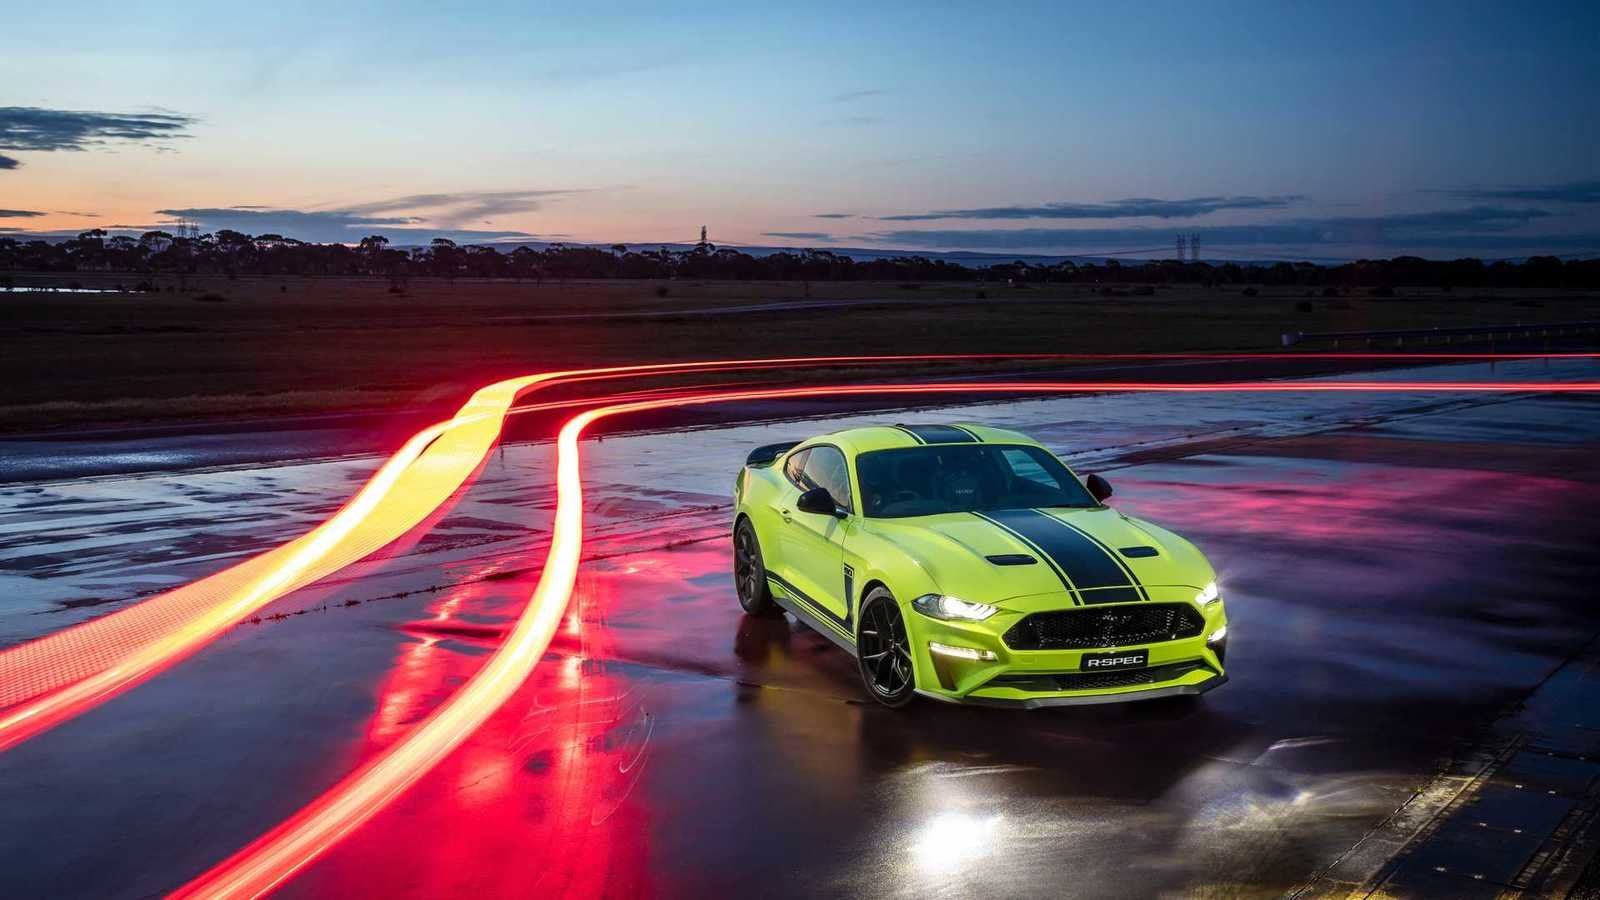 Wallpaper Of The Day: 2020 Ford Mustang R-Spec | Top Speed